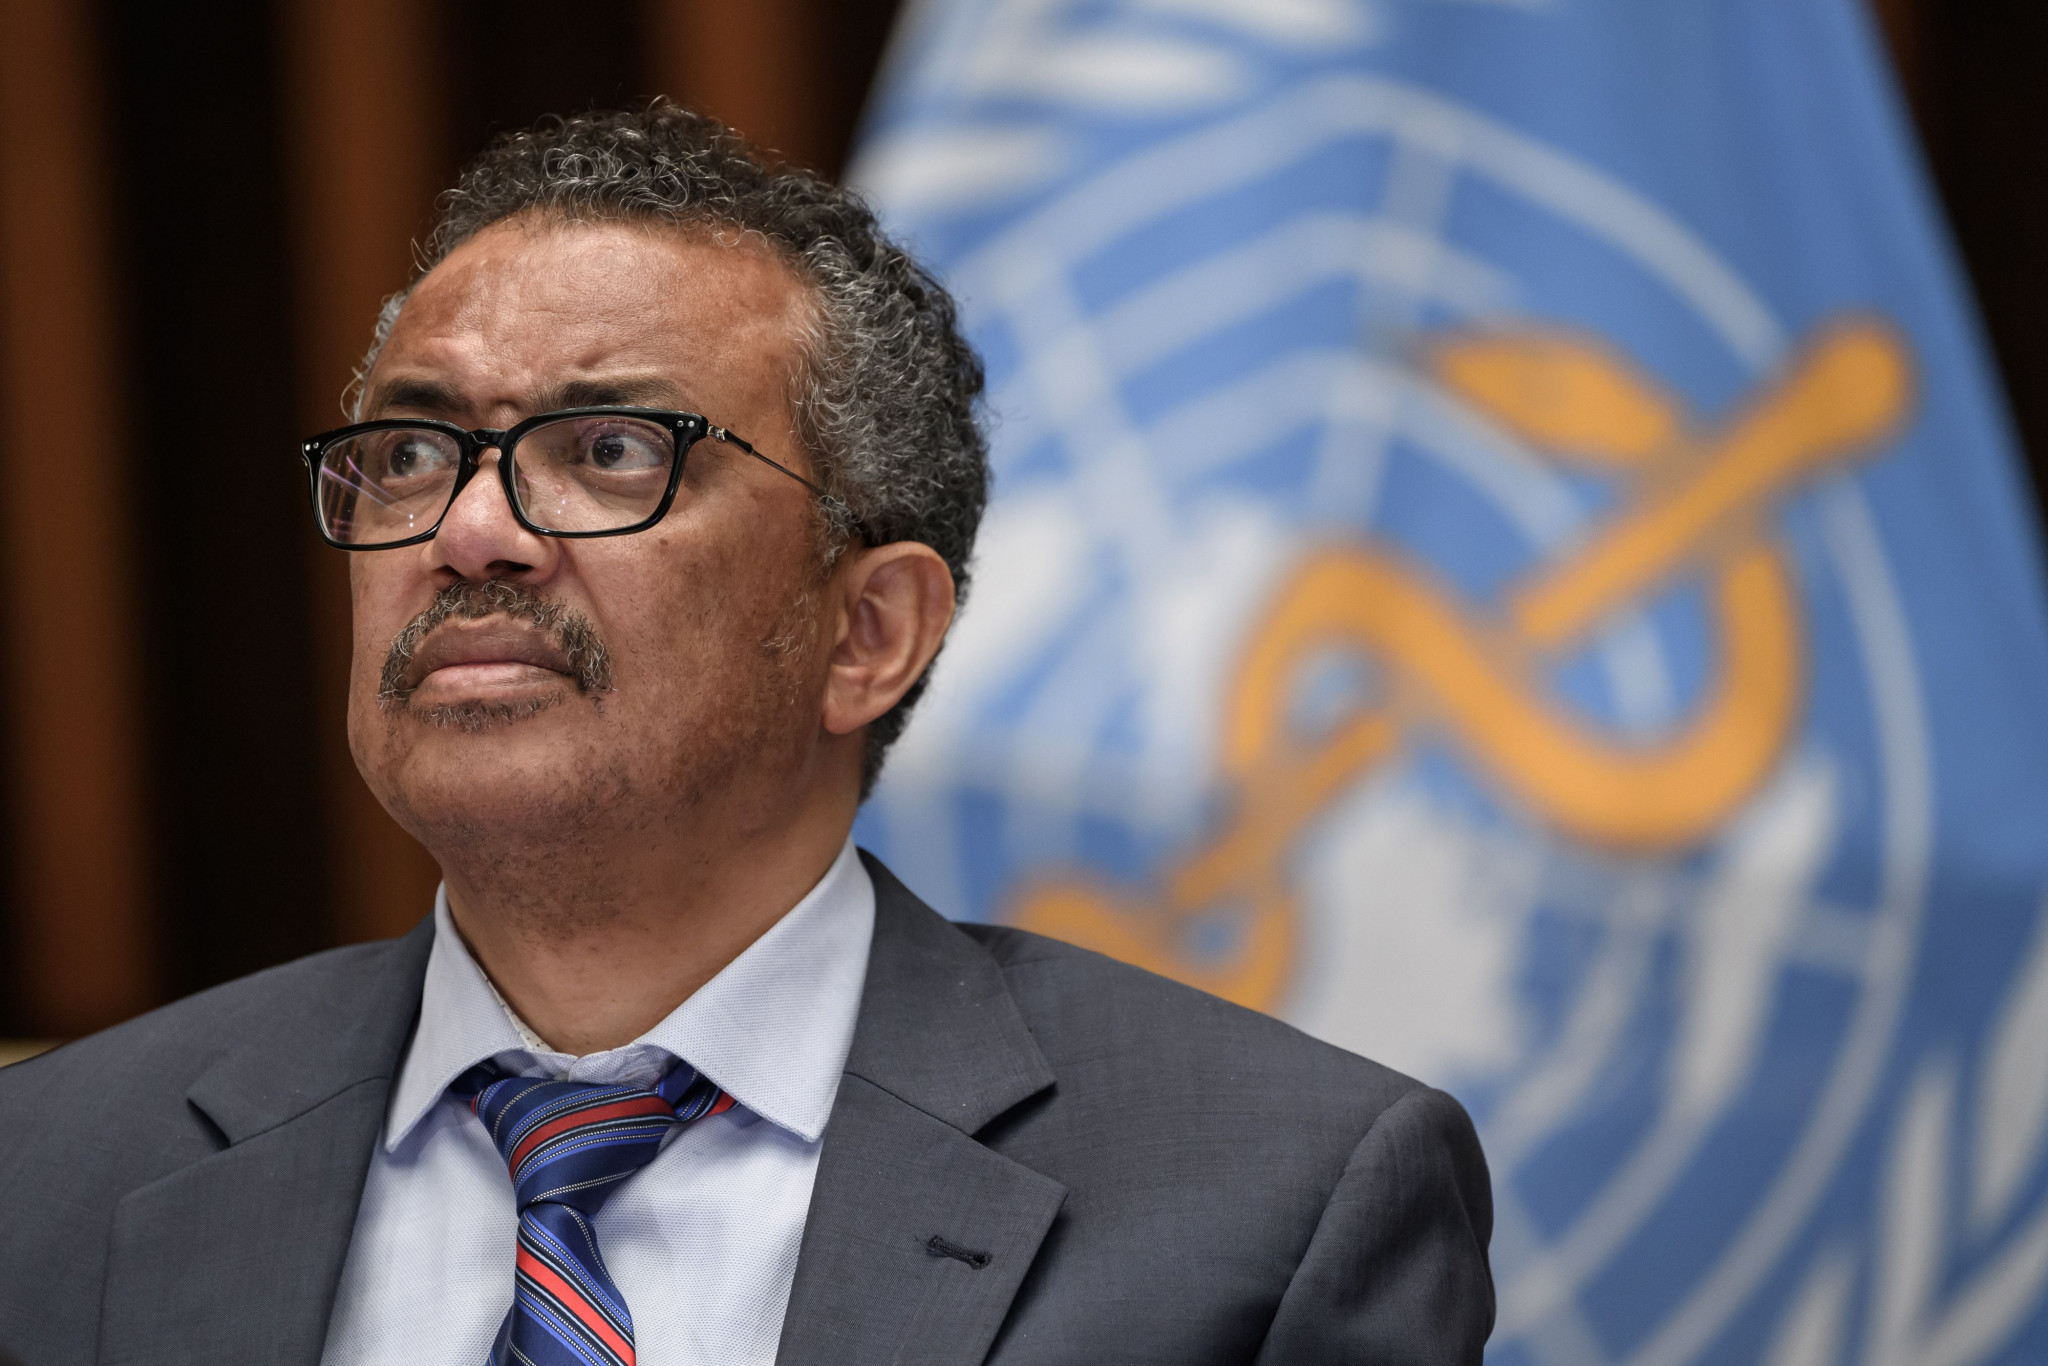 WHO director general to deliver keynote address at virtual IF Forum tomorrow